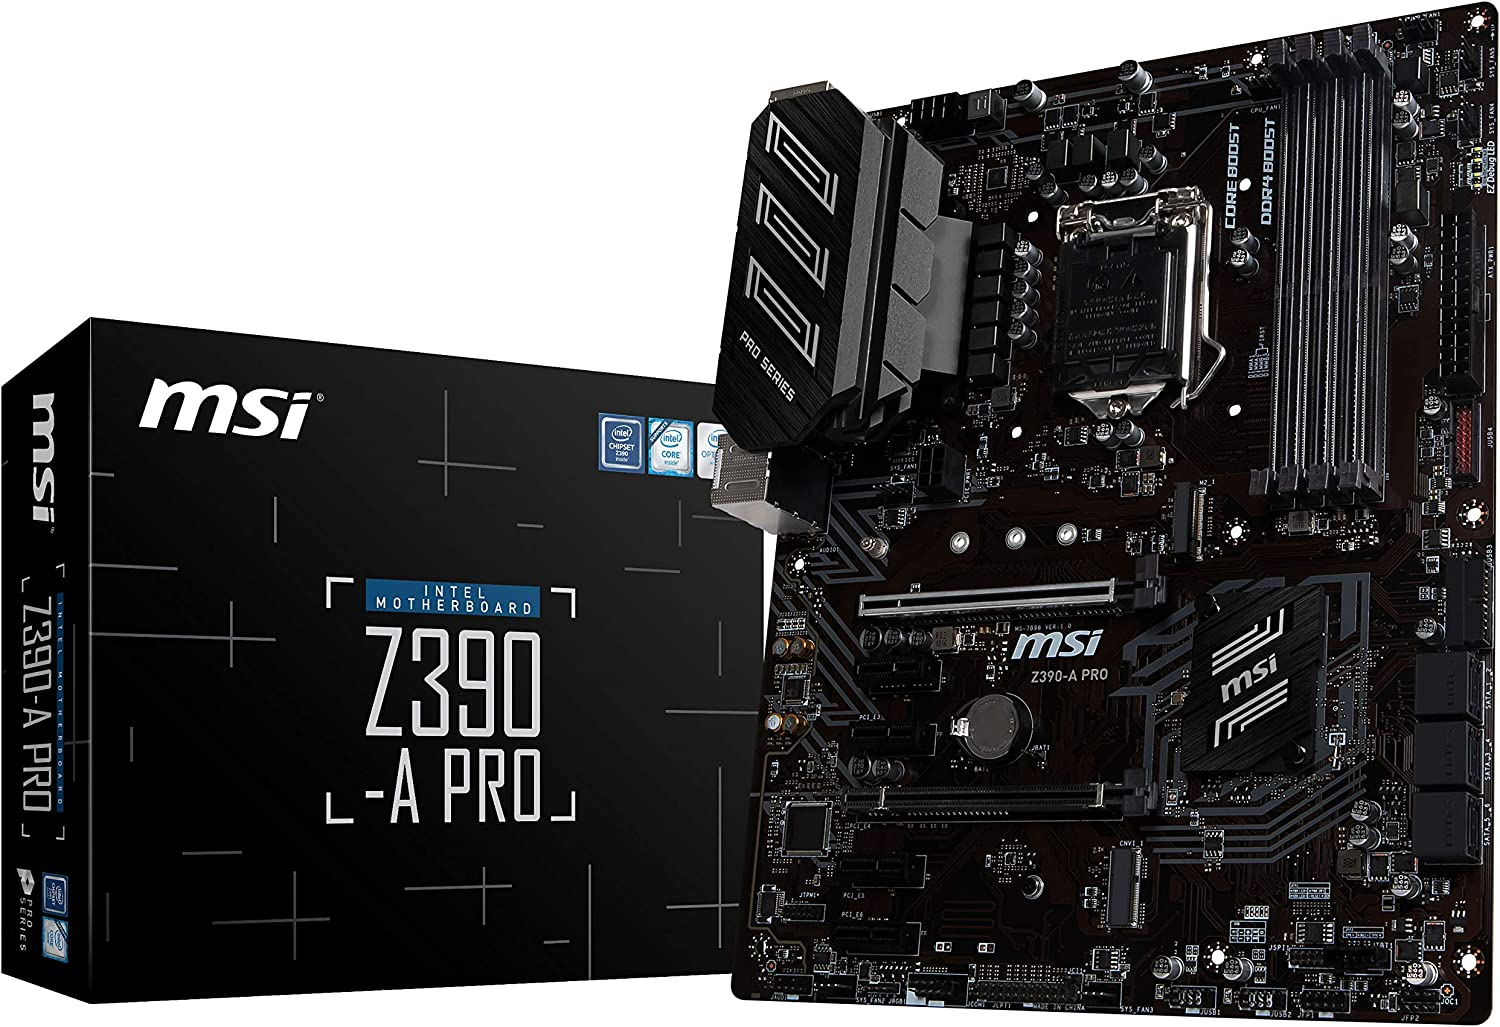 Top 10 Motherboards for i5 9600K 2020,Motherboards for i5 9600K 2020,i5 9600K, DigitalUpBeat - Your one step shop for all your  tech gifts and gadgets